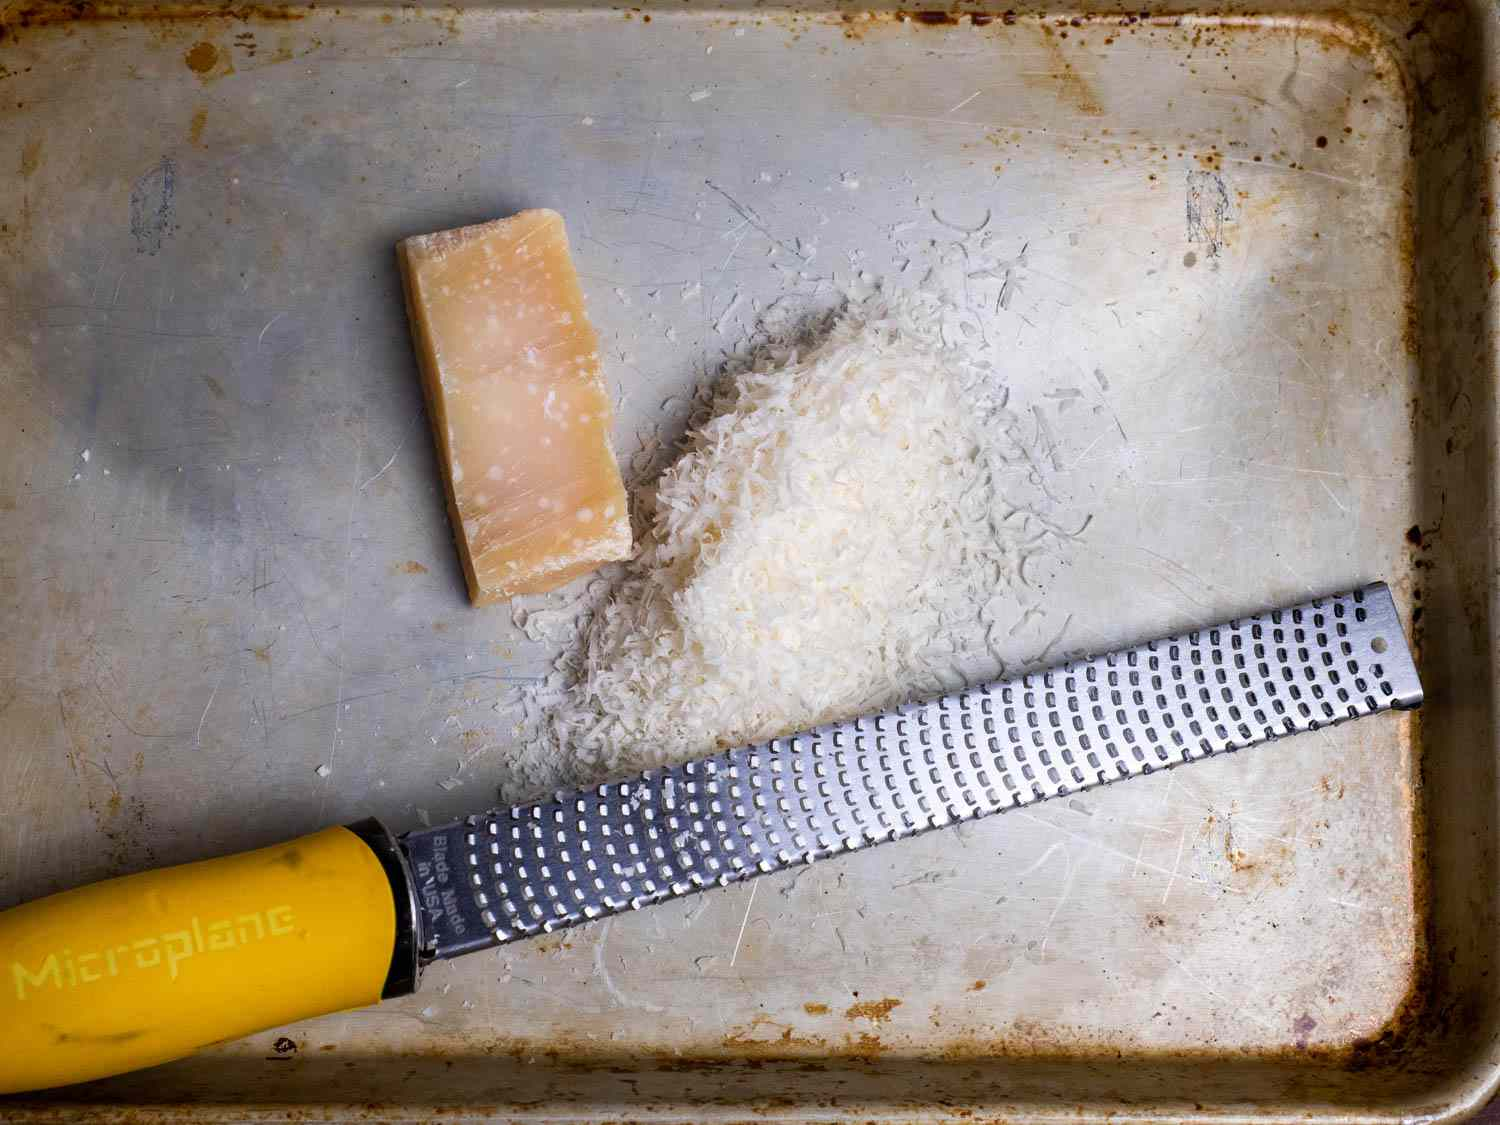 A Microplane alongside a pile of finely grated cheese and a chunk of Parmesan